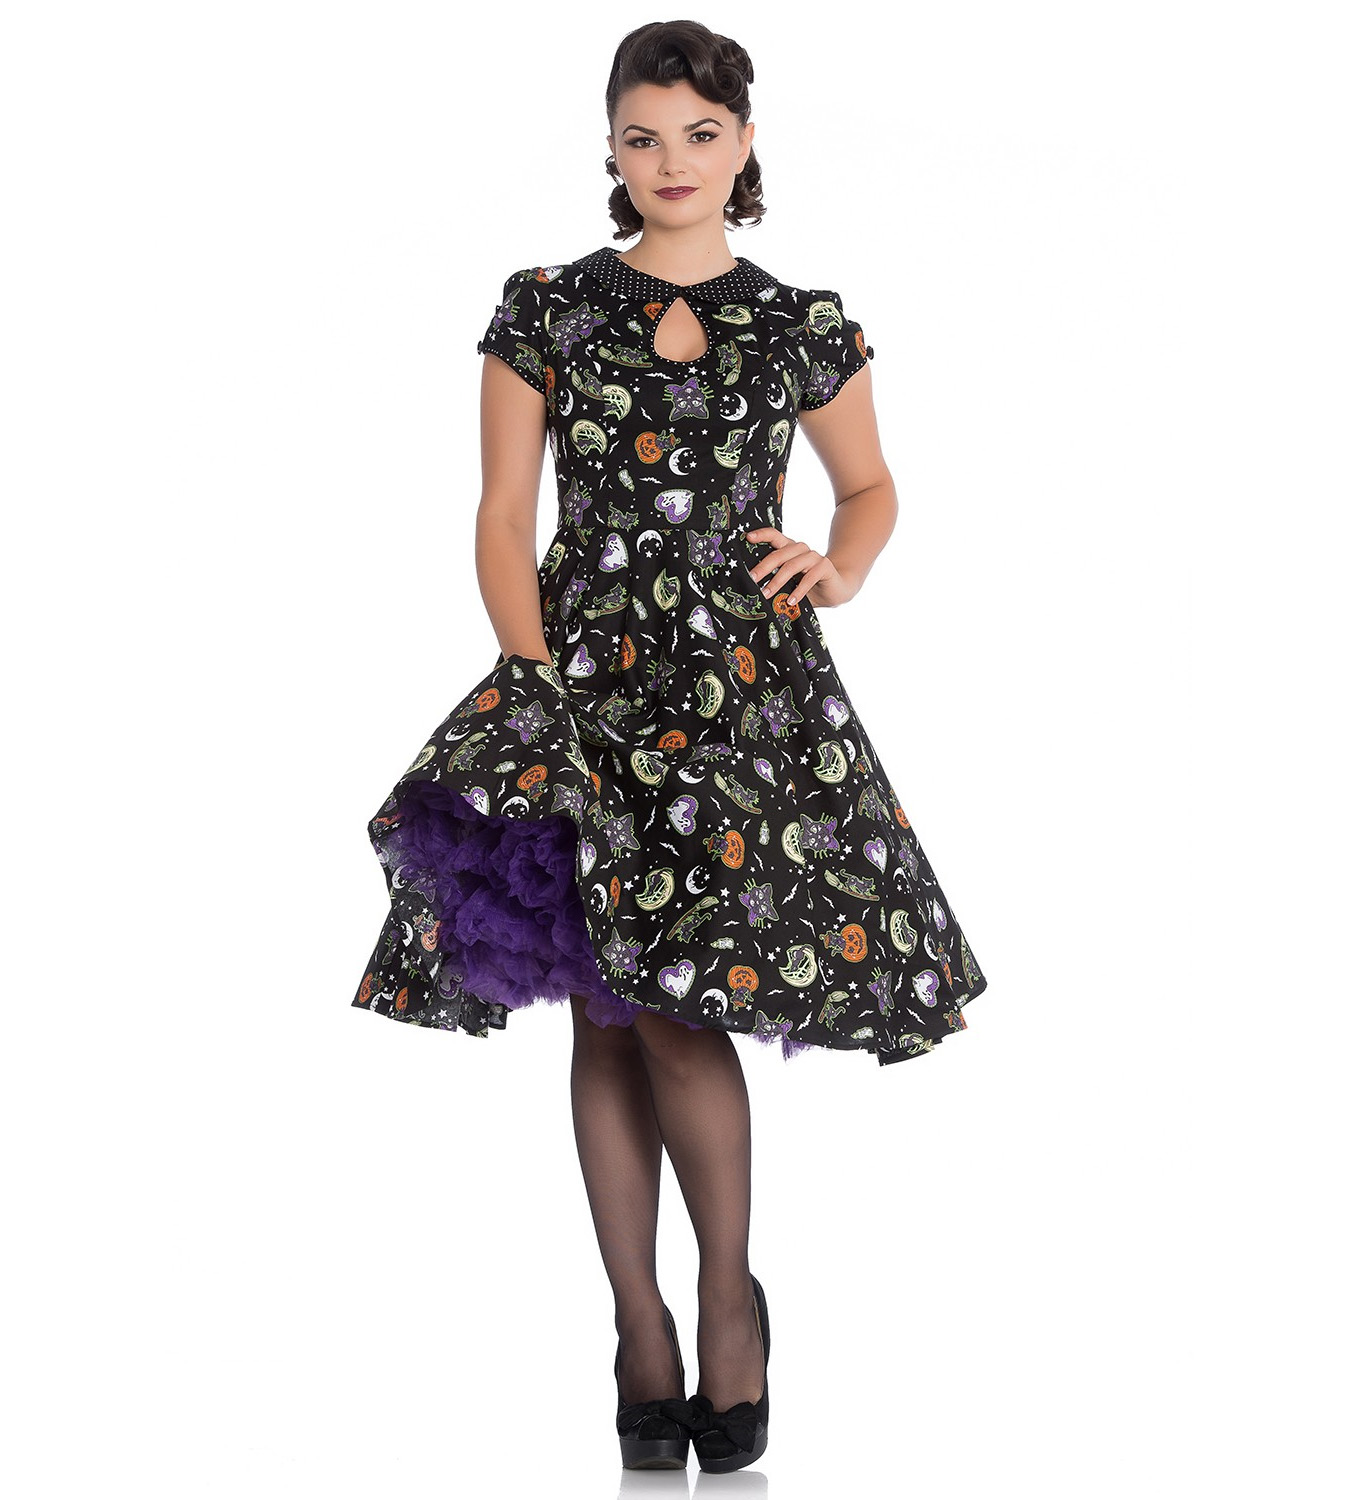 Hell-Bunny-50s-Black-Pin-Up-Dress-Horror-Witchy-SALEM-Halloween-All-Sizes thumbnail 5